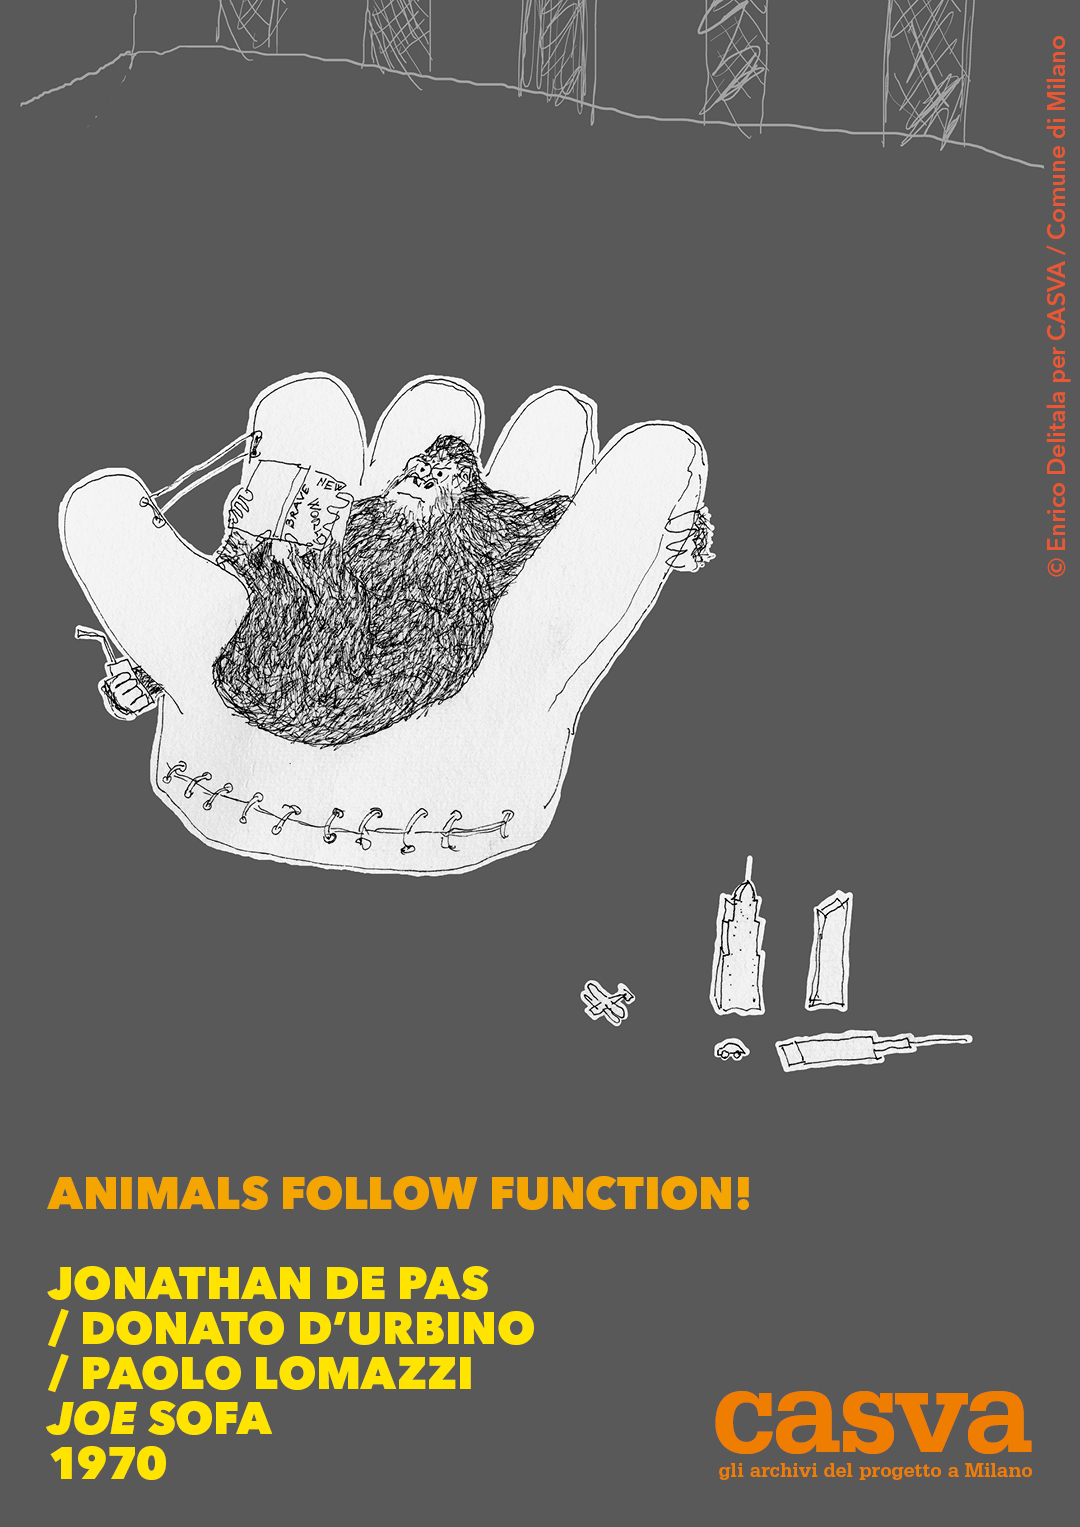 Gorilla: Enrico Delitala illustrator animals follow function form follows function CASVA De Pas D'Urbino Lomazzi Jonathan De Pas Donato D'Urbino Paolo Lomazzi Joe sofa